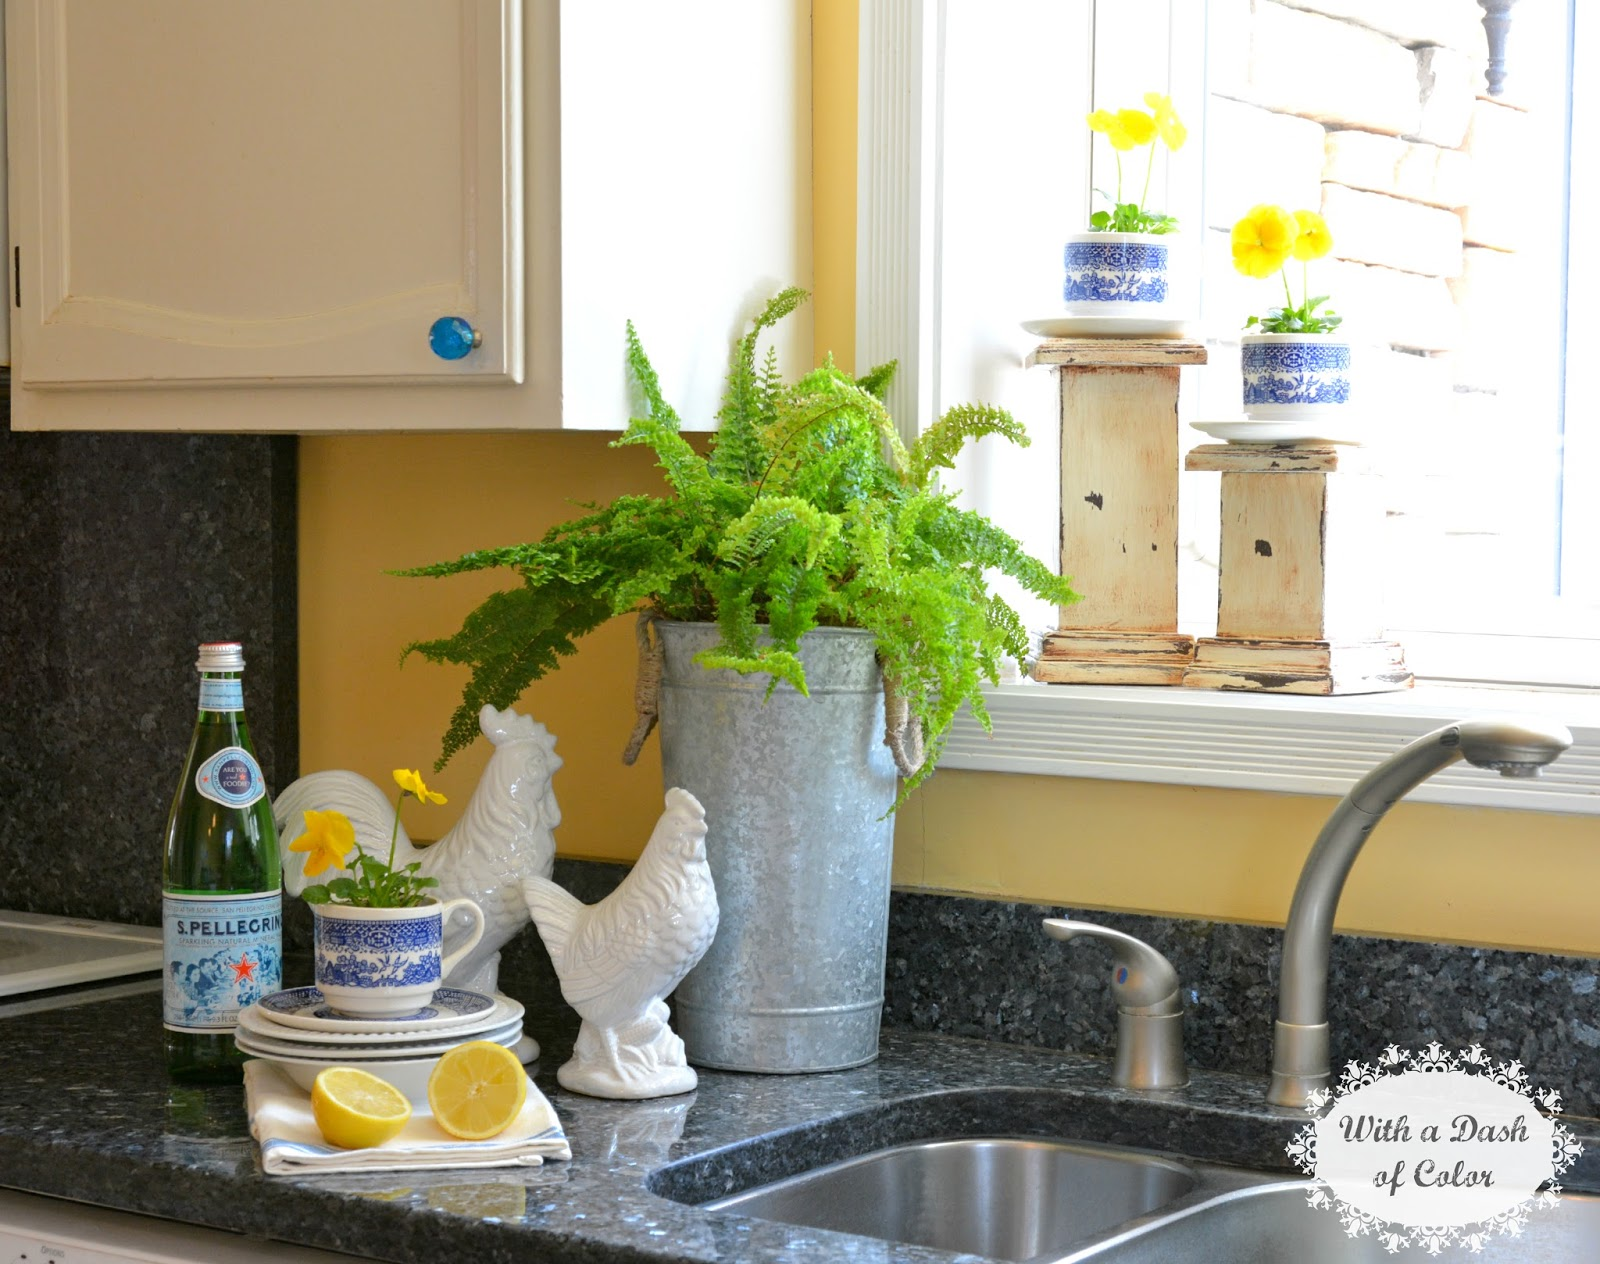 Kitchen Window Decoration Ideas: With A Dash Of Color: Decorating The Kitchen Window Sill